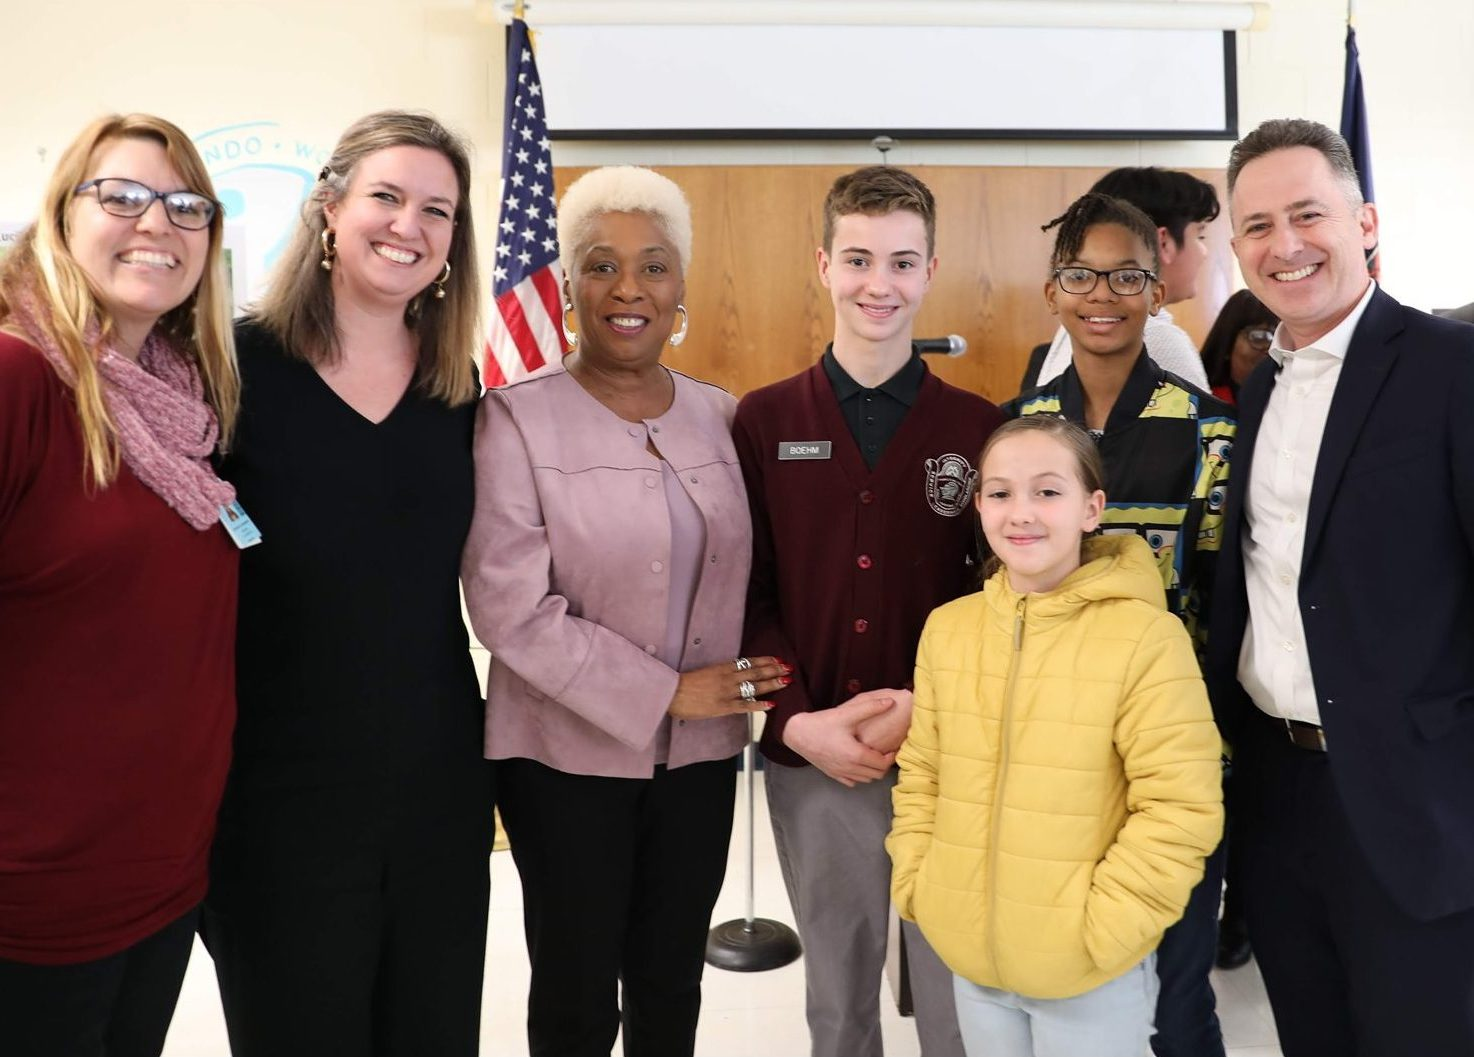 Richmond Public Schools superintendent, school board members, and students